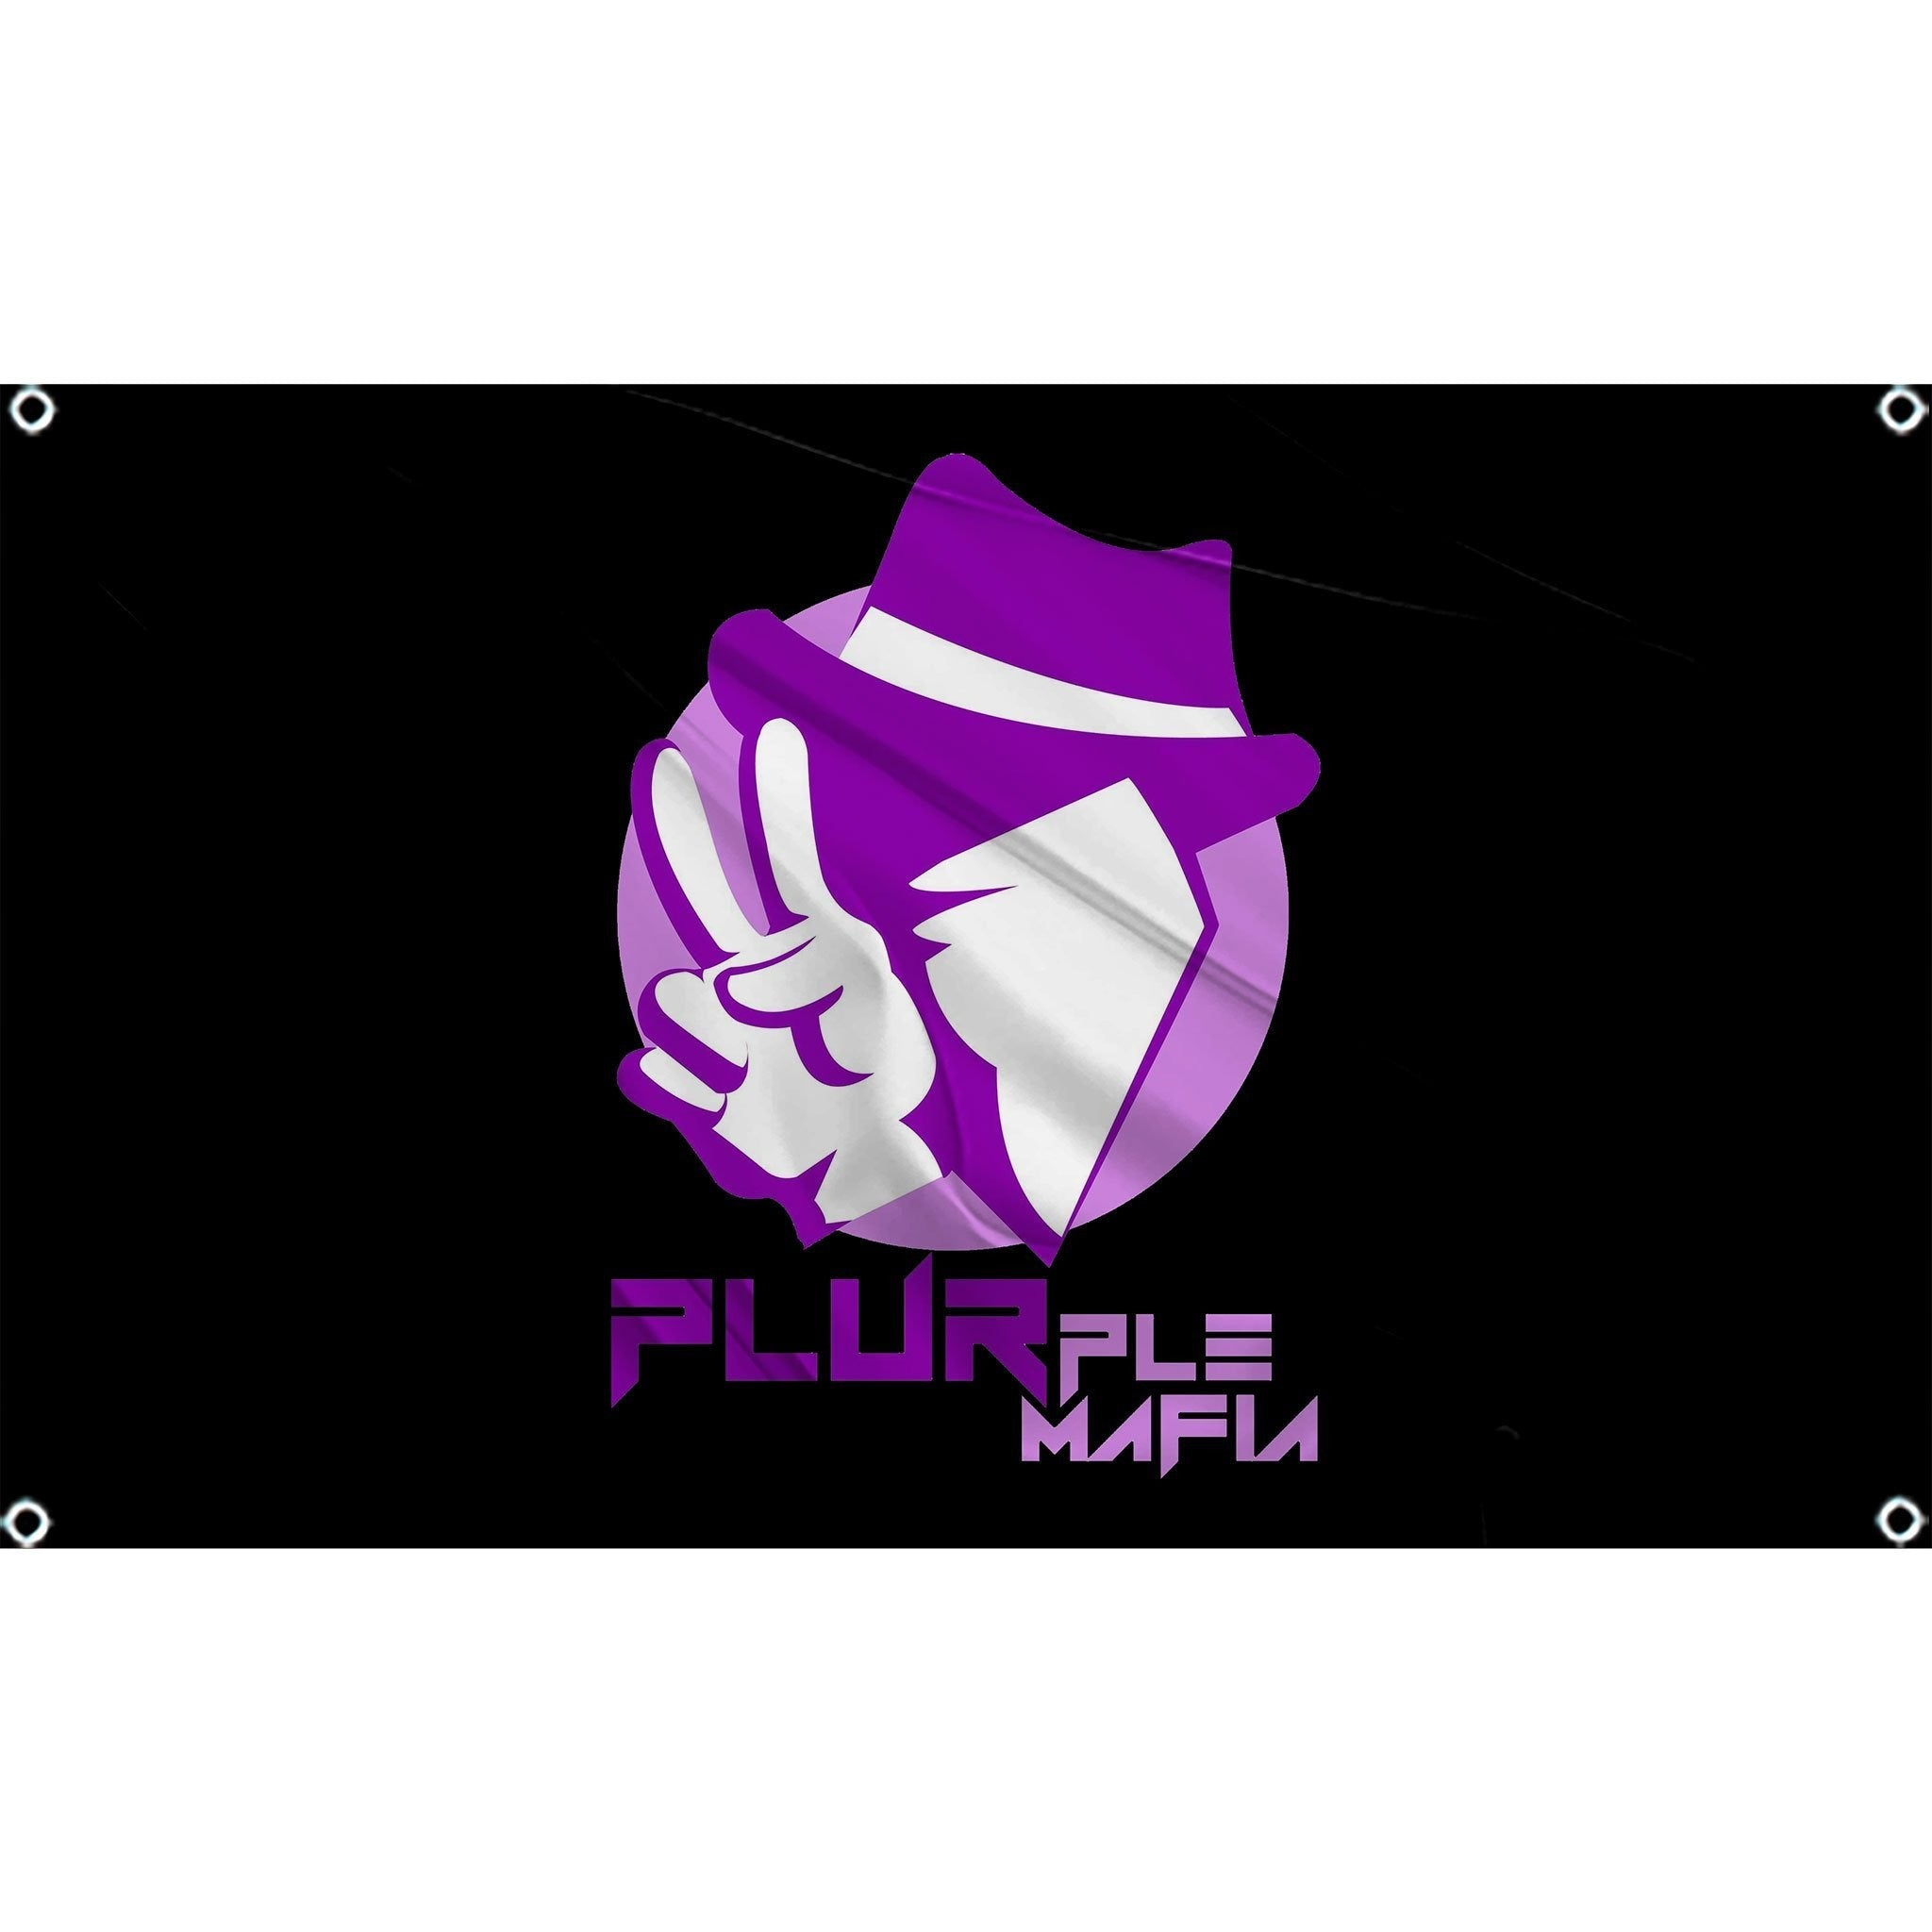 Person in purple top hat putting up peace sign with hands  with plurple mafia logo on black flag